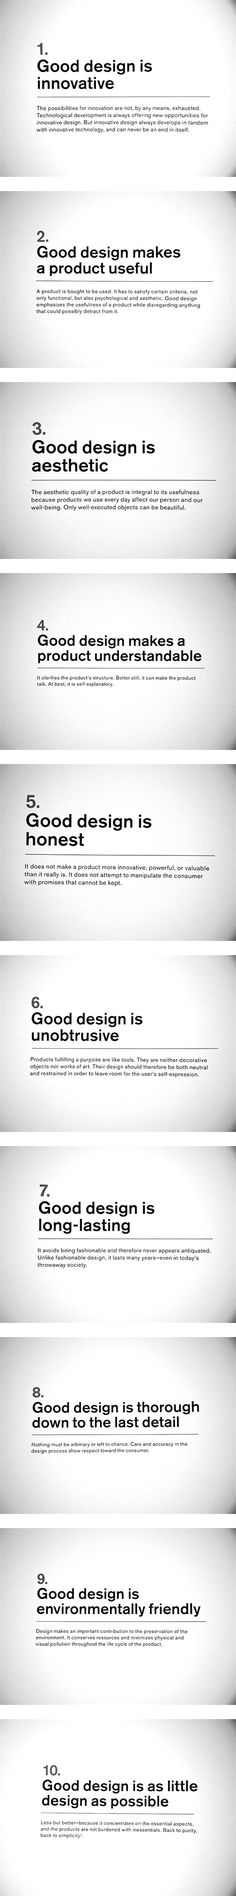 follow my fanpage: https://www.facebook.com/InternetNetworkMarketerIncMlmStrategist Dieter Ramms 10 principles of good design more on http://html5themes.org